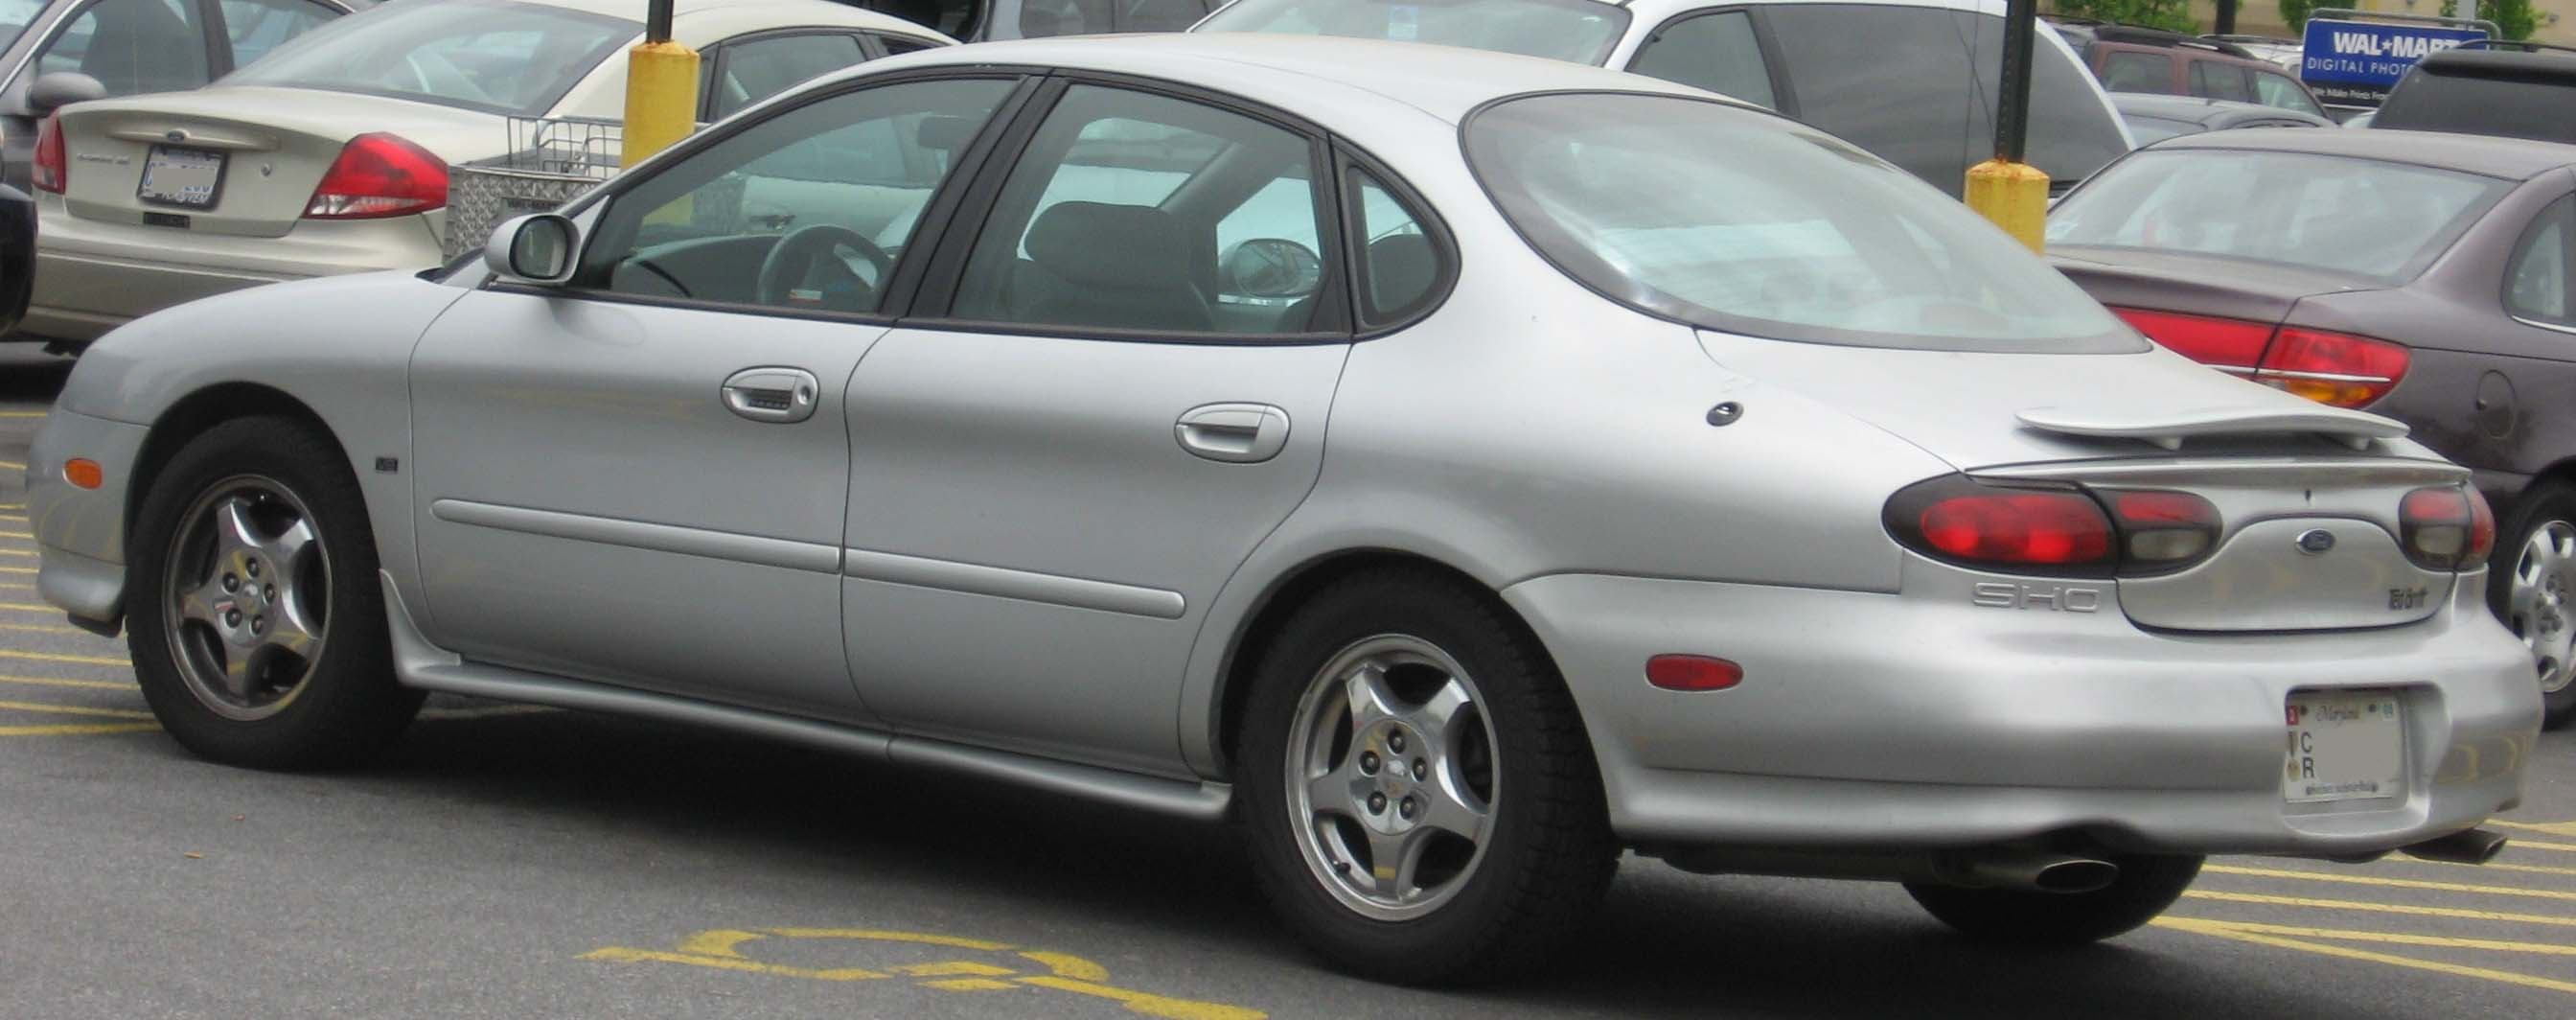 File1996 1999 ford taurus sho rear jpg